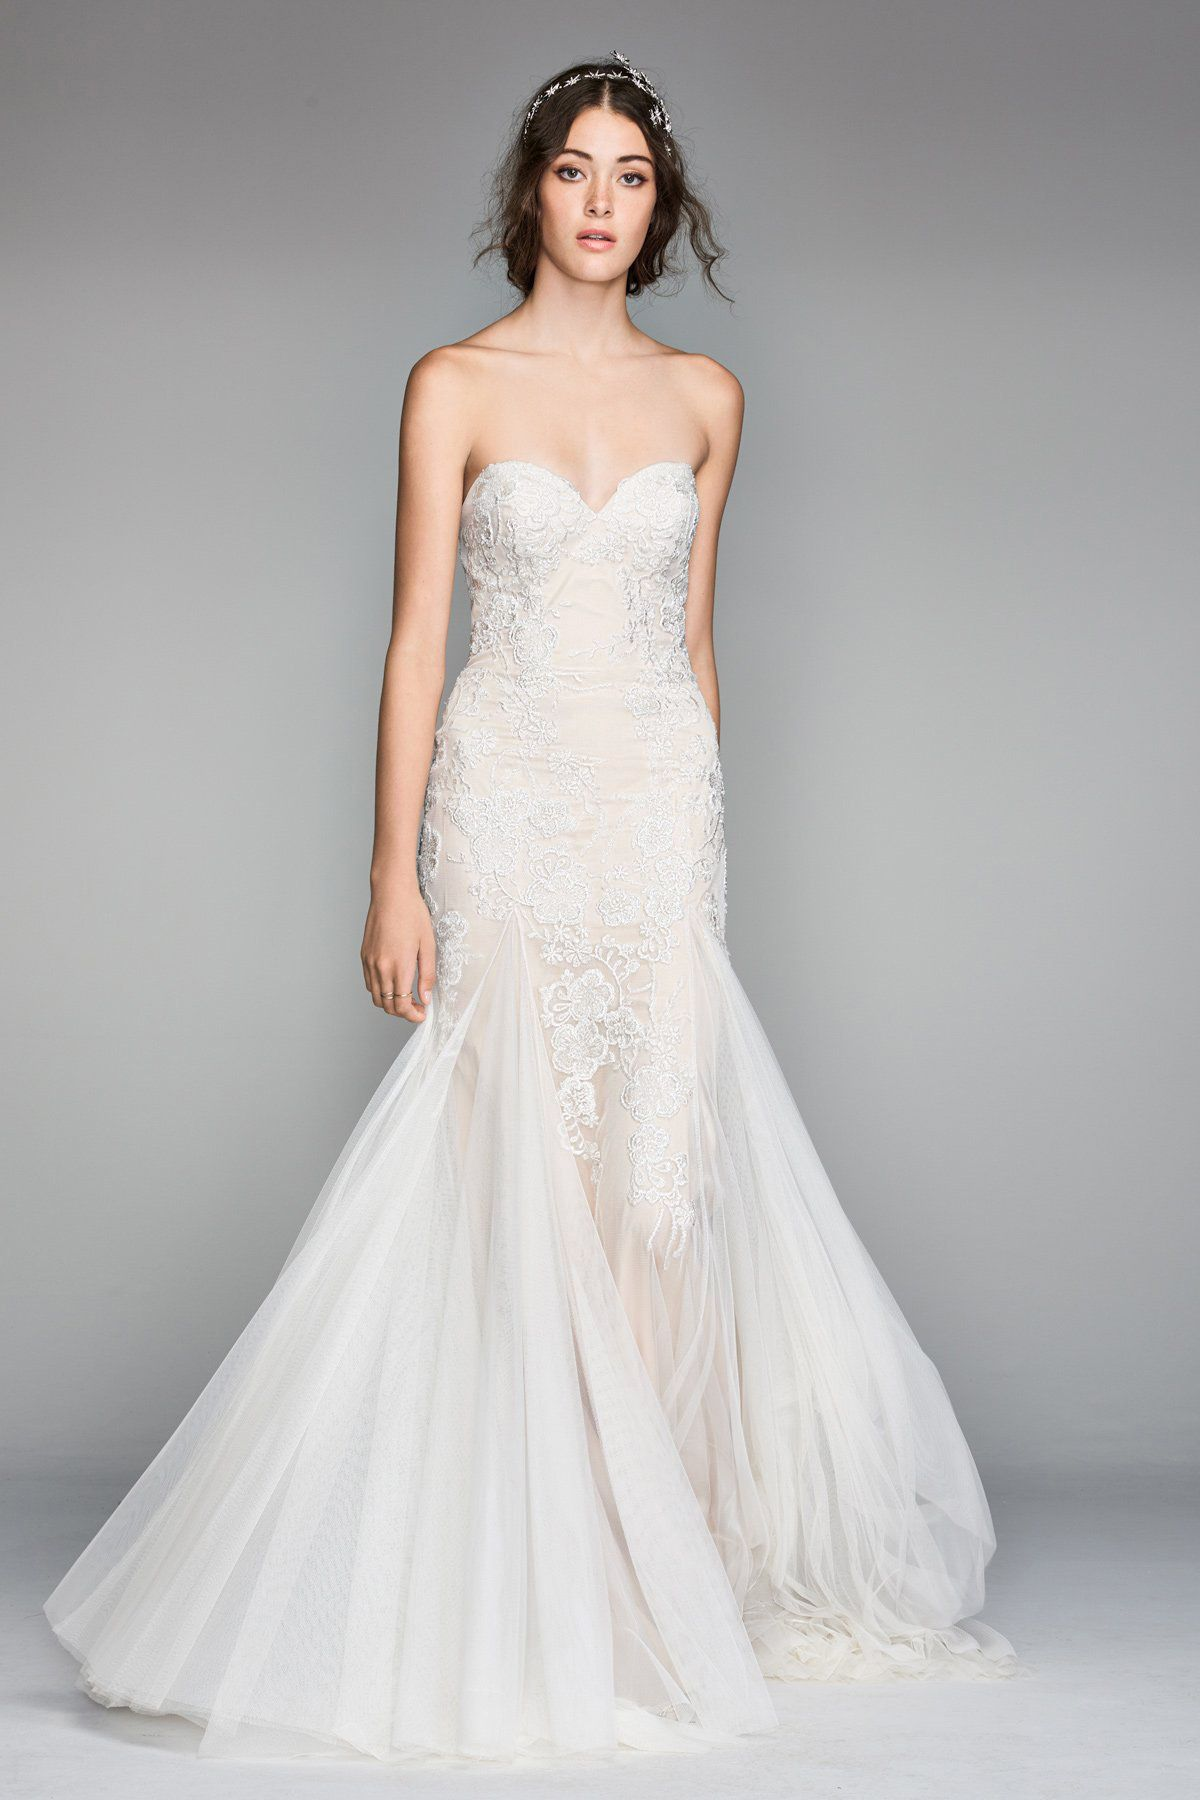 Willowby lian estimated in store january 2018 willowby willowby lian estimated in store january 2018 bridal wedding dressesblush ombrellifo Image collections